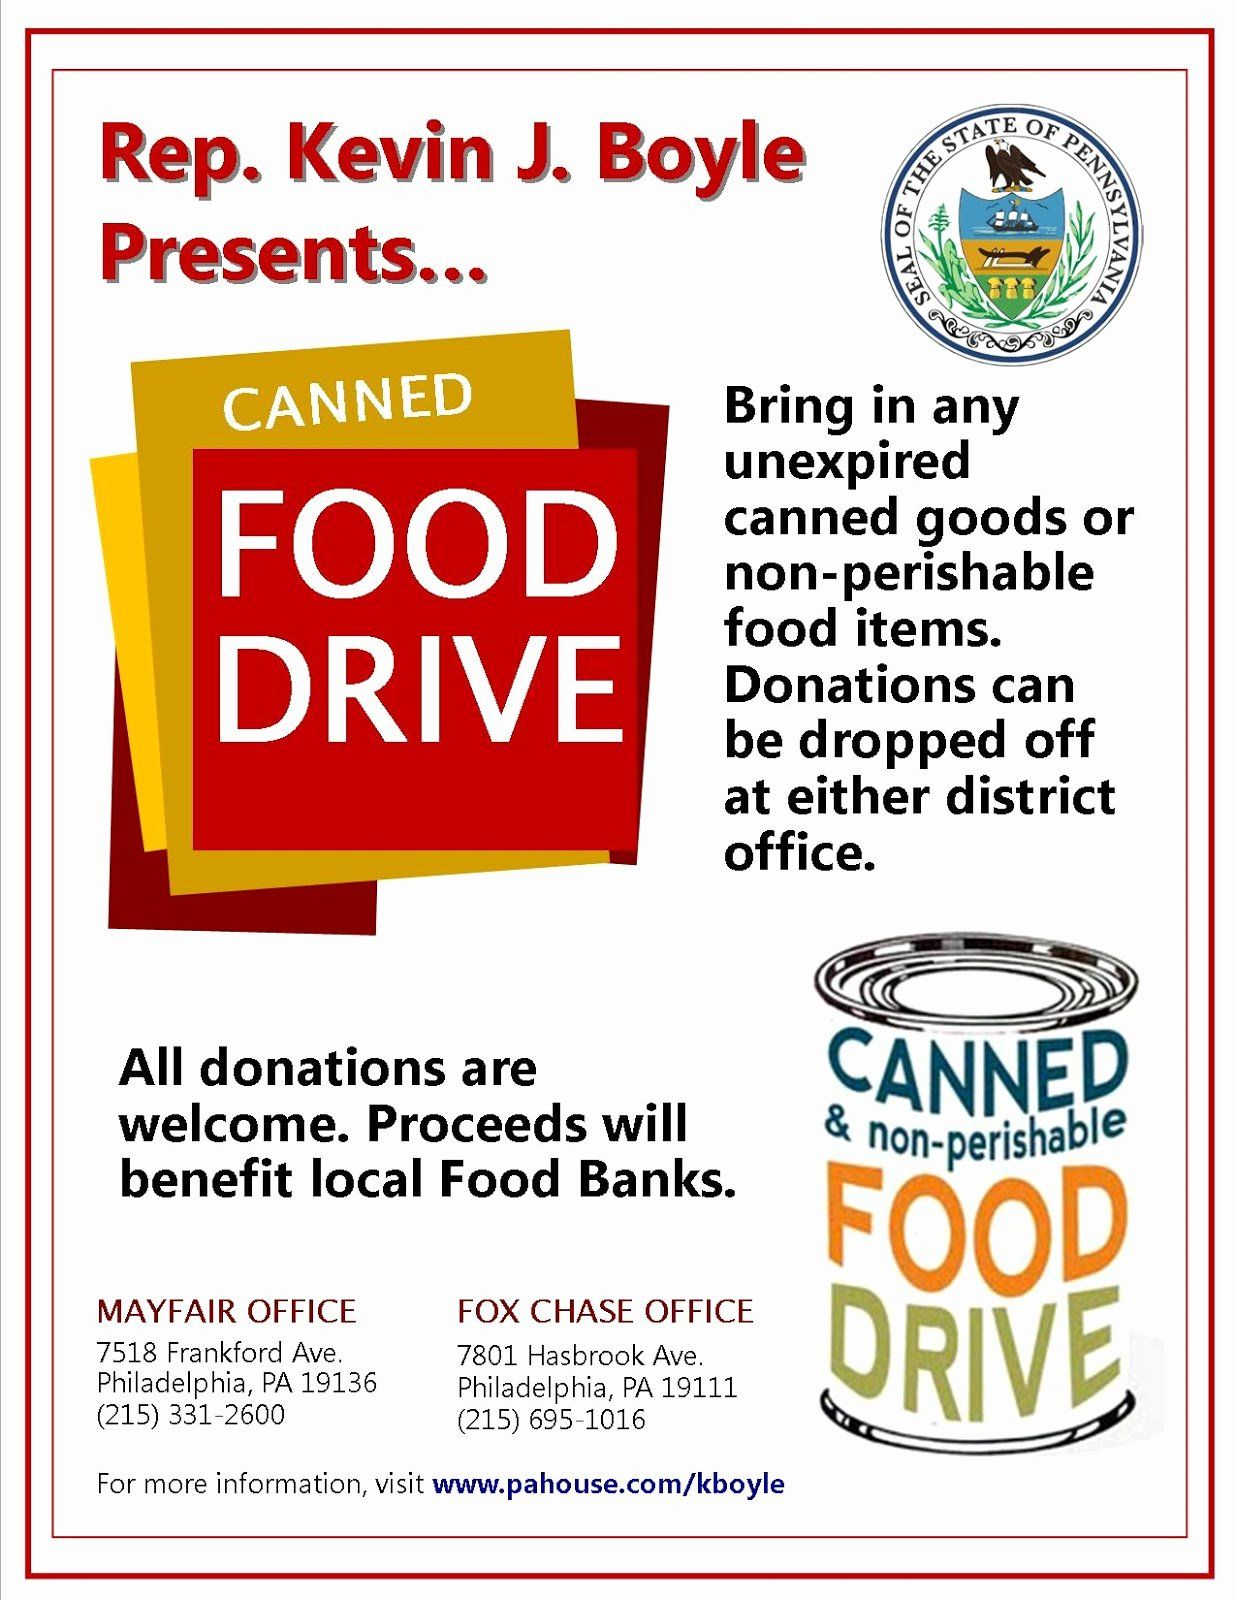 Canned Food Drive Flyer New Mayfair Civic association